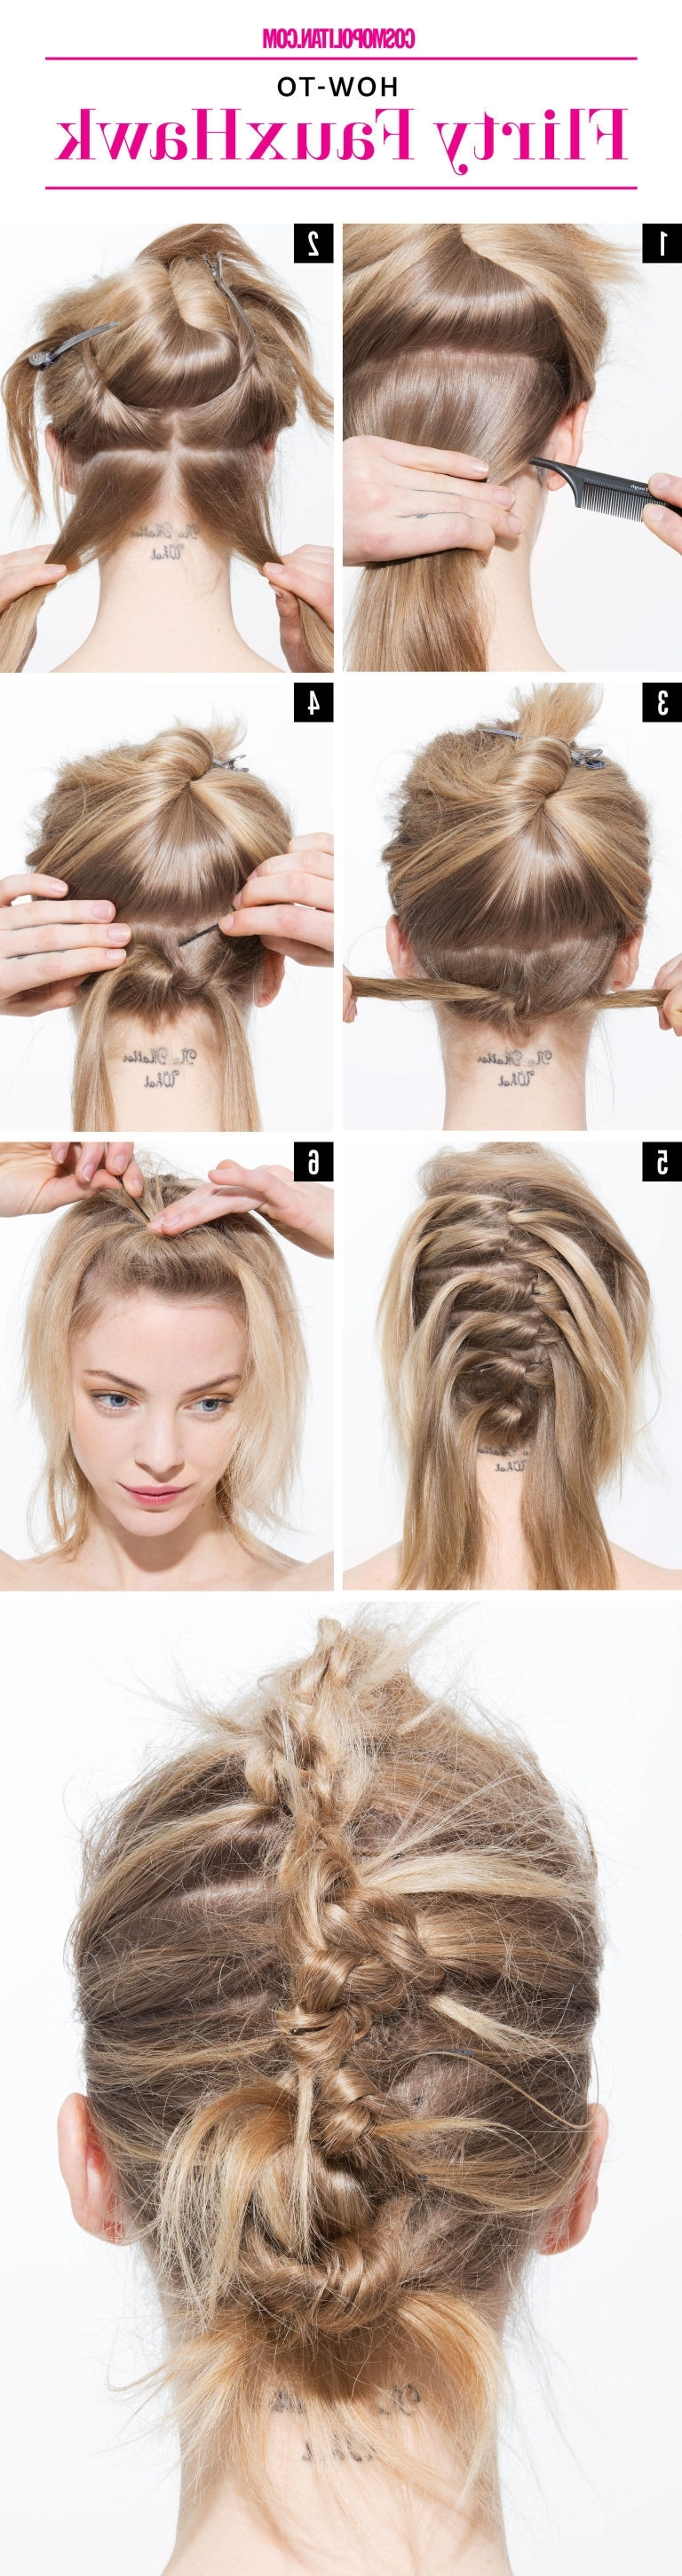 Fancy Ponytail Hairstyles Stock Beautiful Easy Hairstyles Long Hair Intended For Famous Two Tone High Ponytail Hairstyles With A Fauxhawk (View 6 of 20)